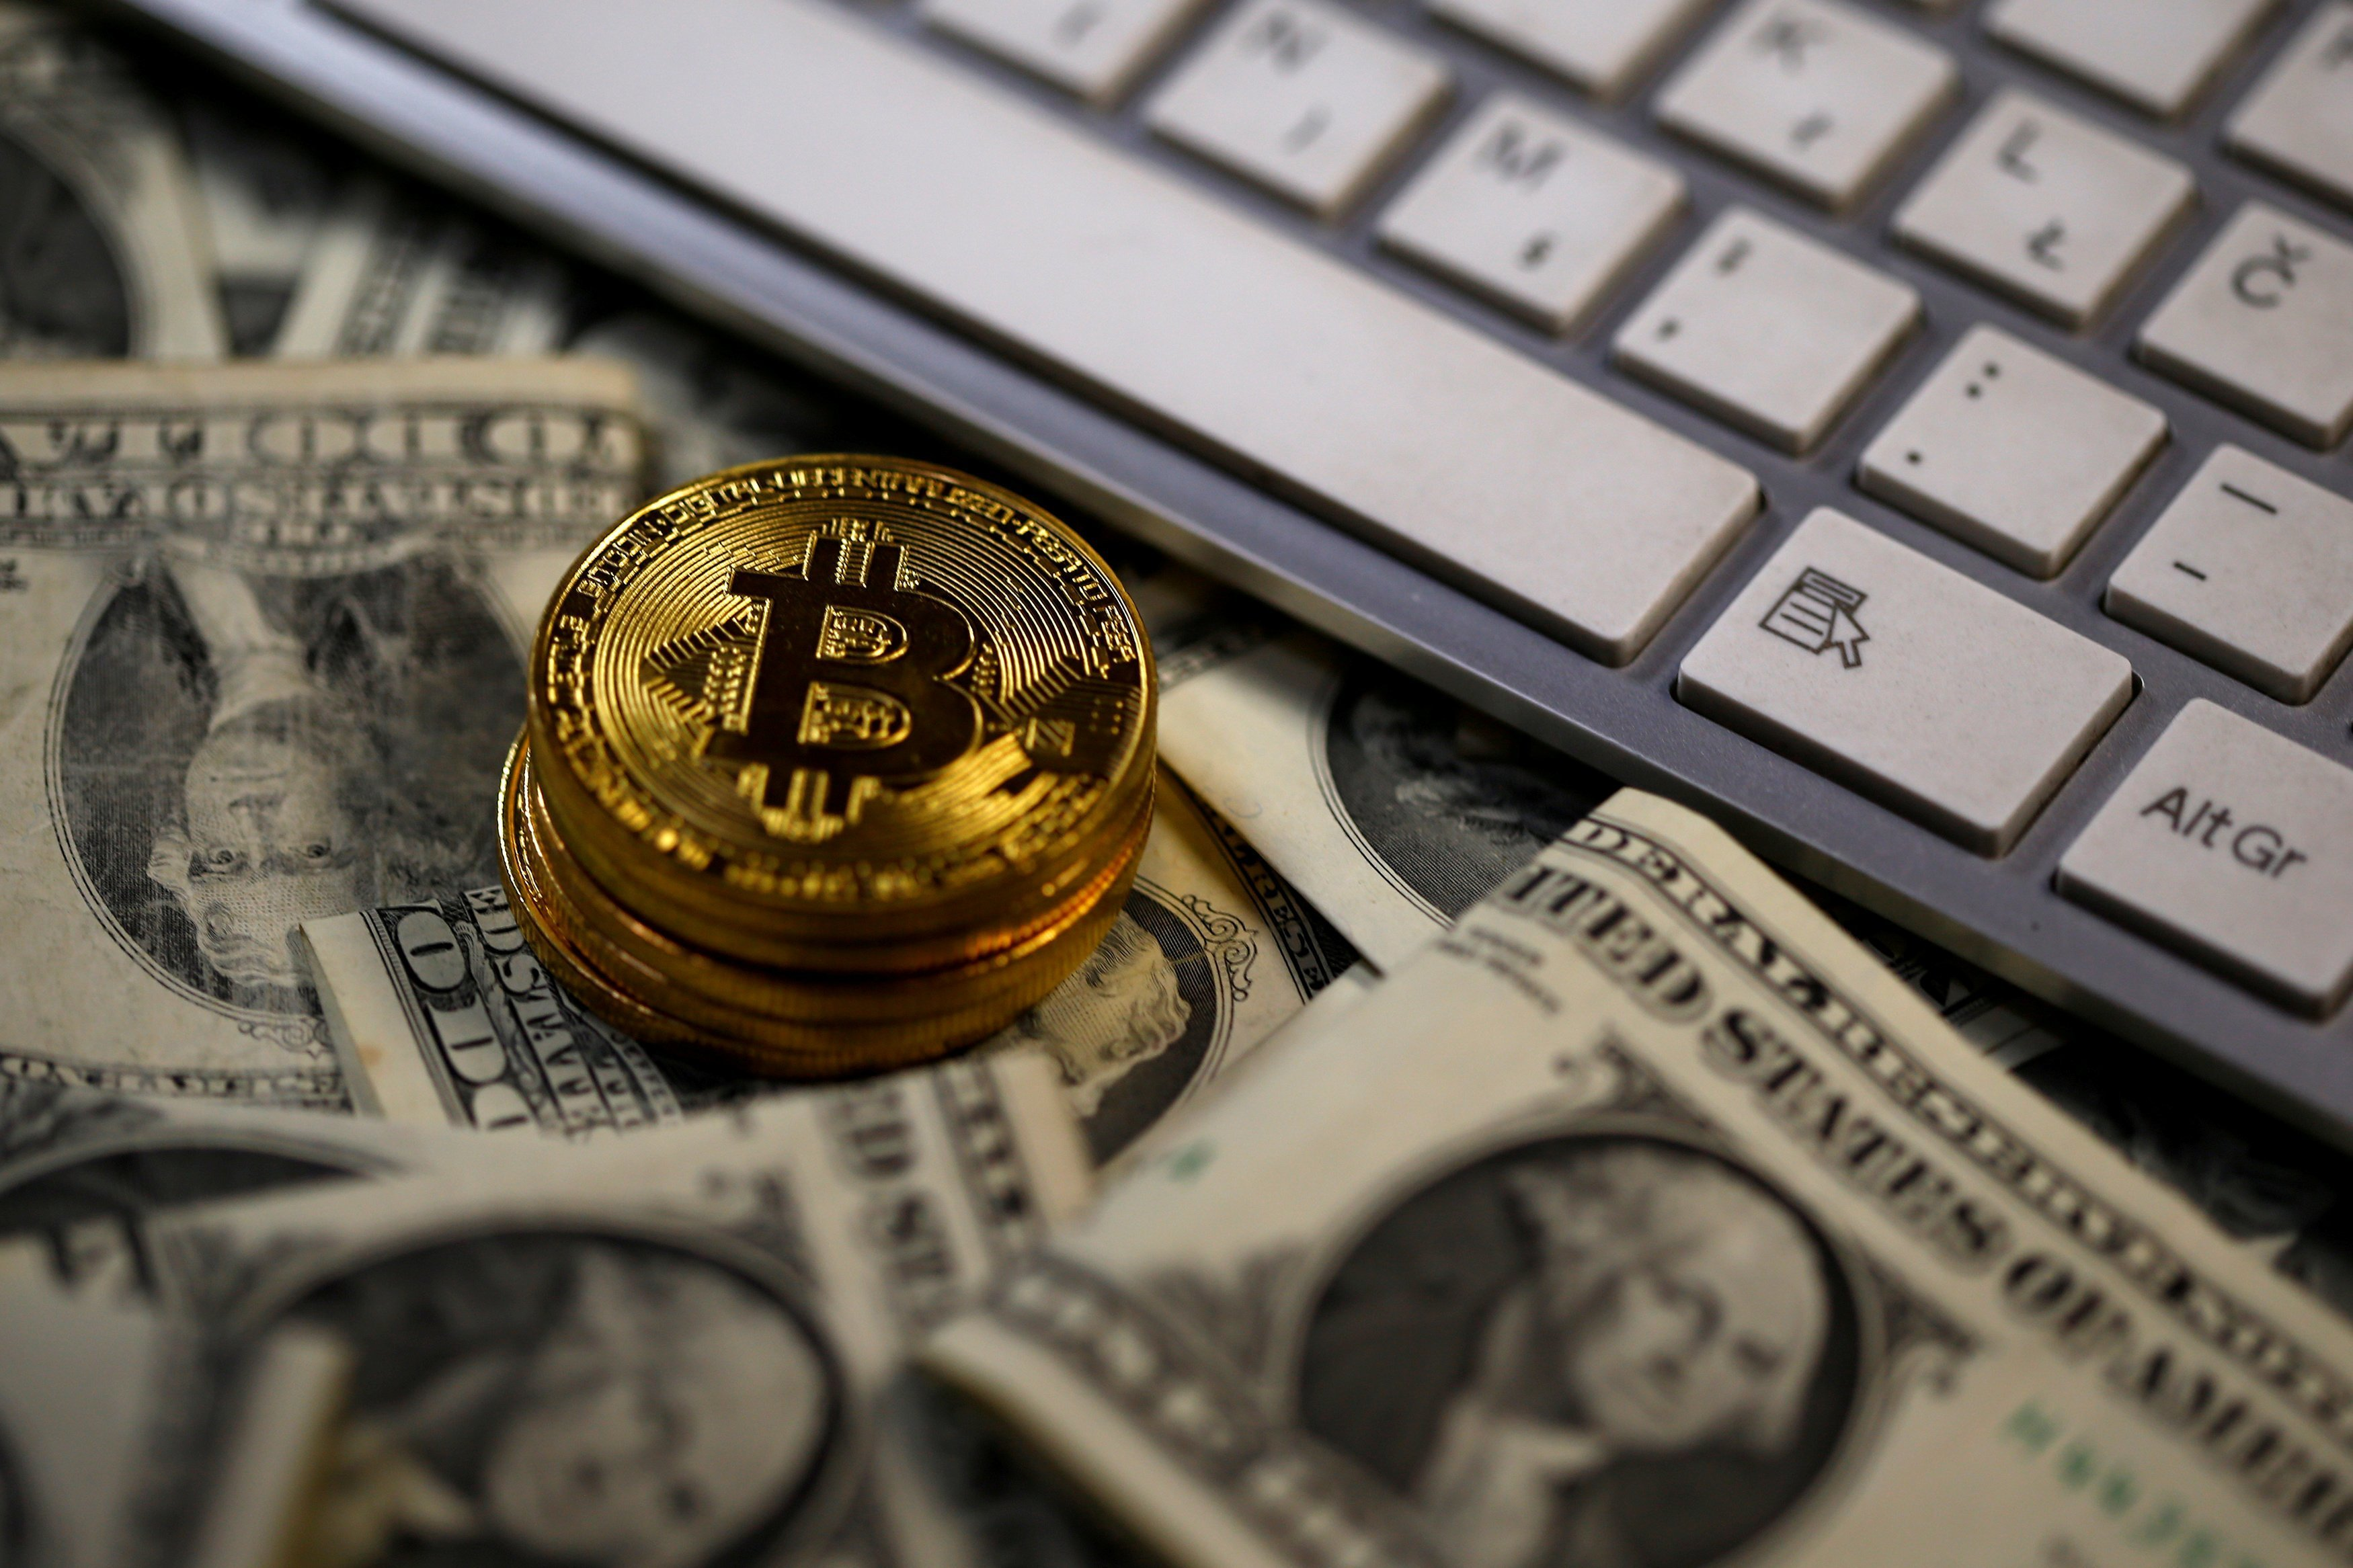 USA Could Issue Its Own Digital Currency Next Year